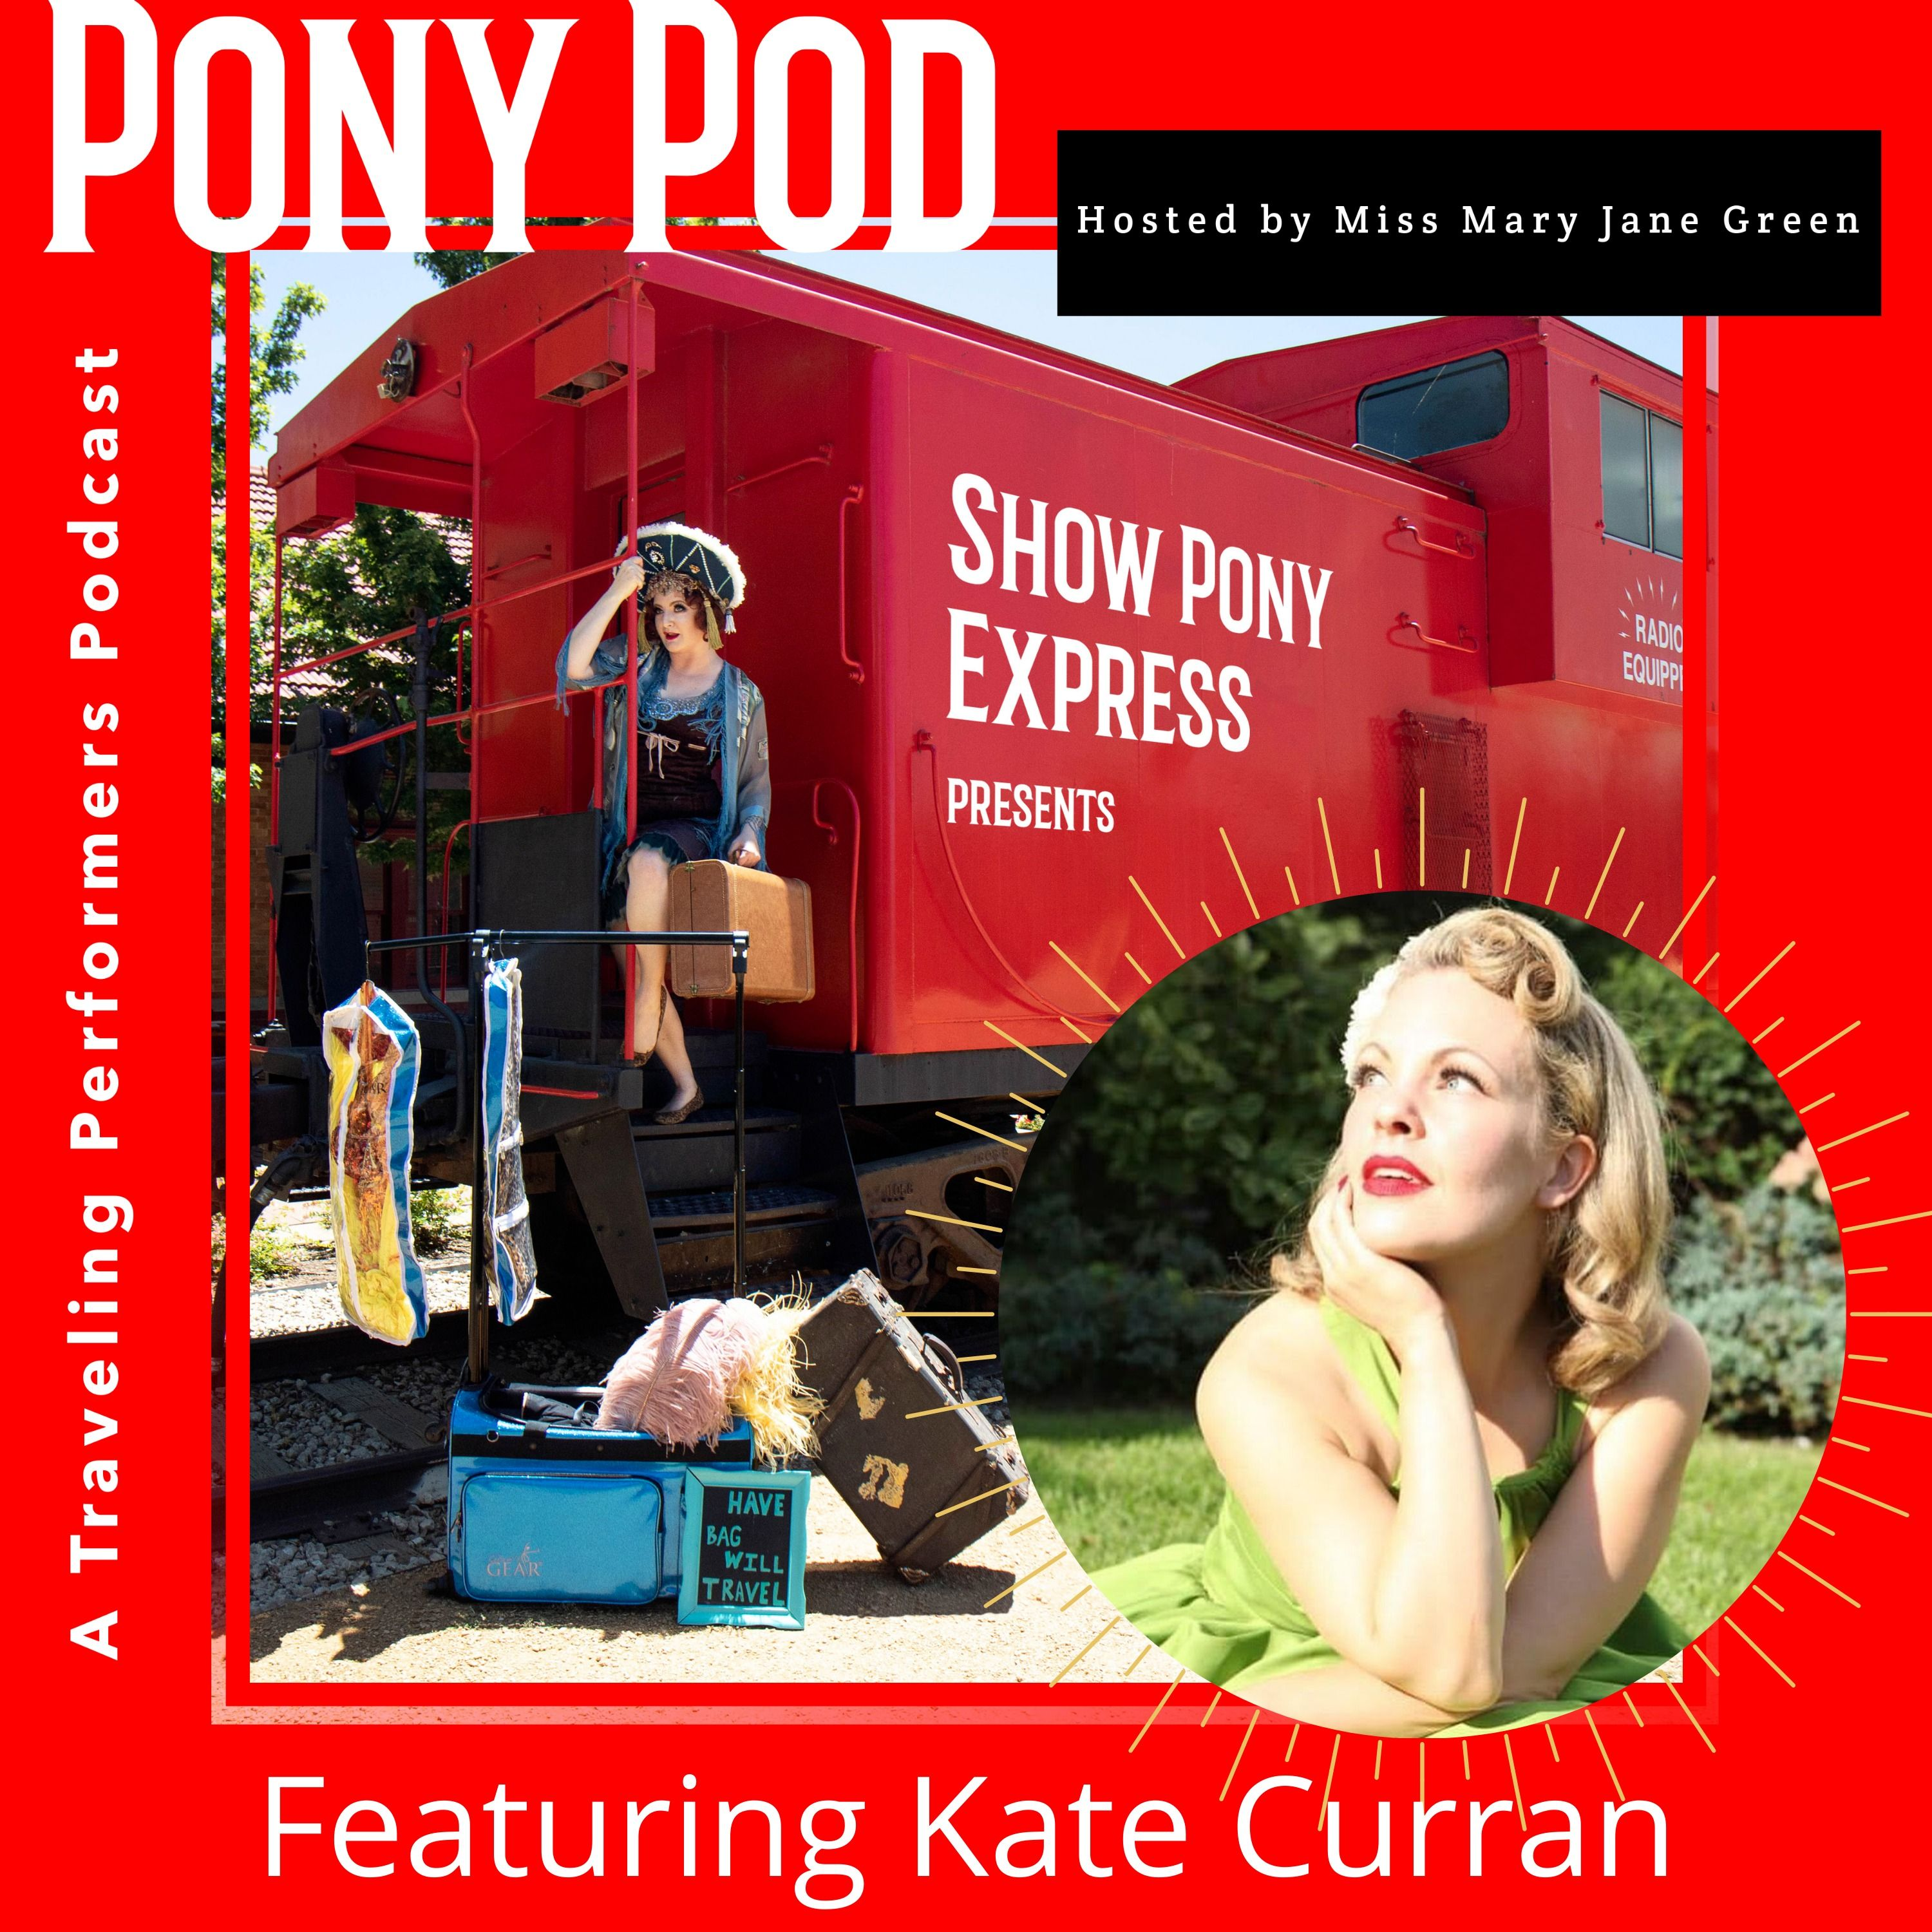 Pony Pod - A Traveling Performers Podcast Featuring Kate Curran